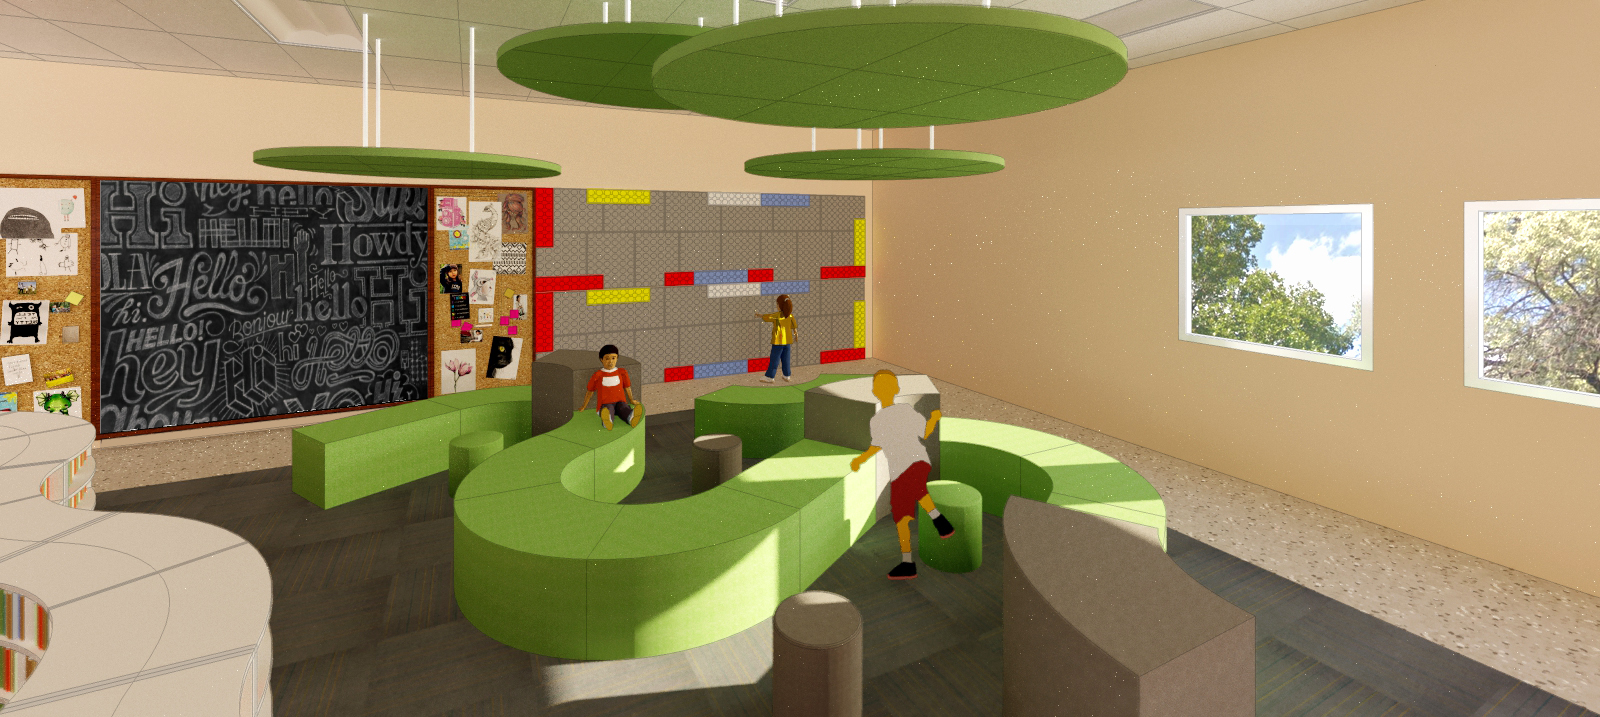 9 Lego Wall and Rest Area.jpg